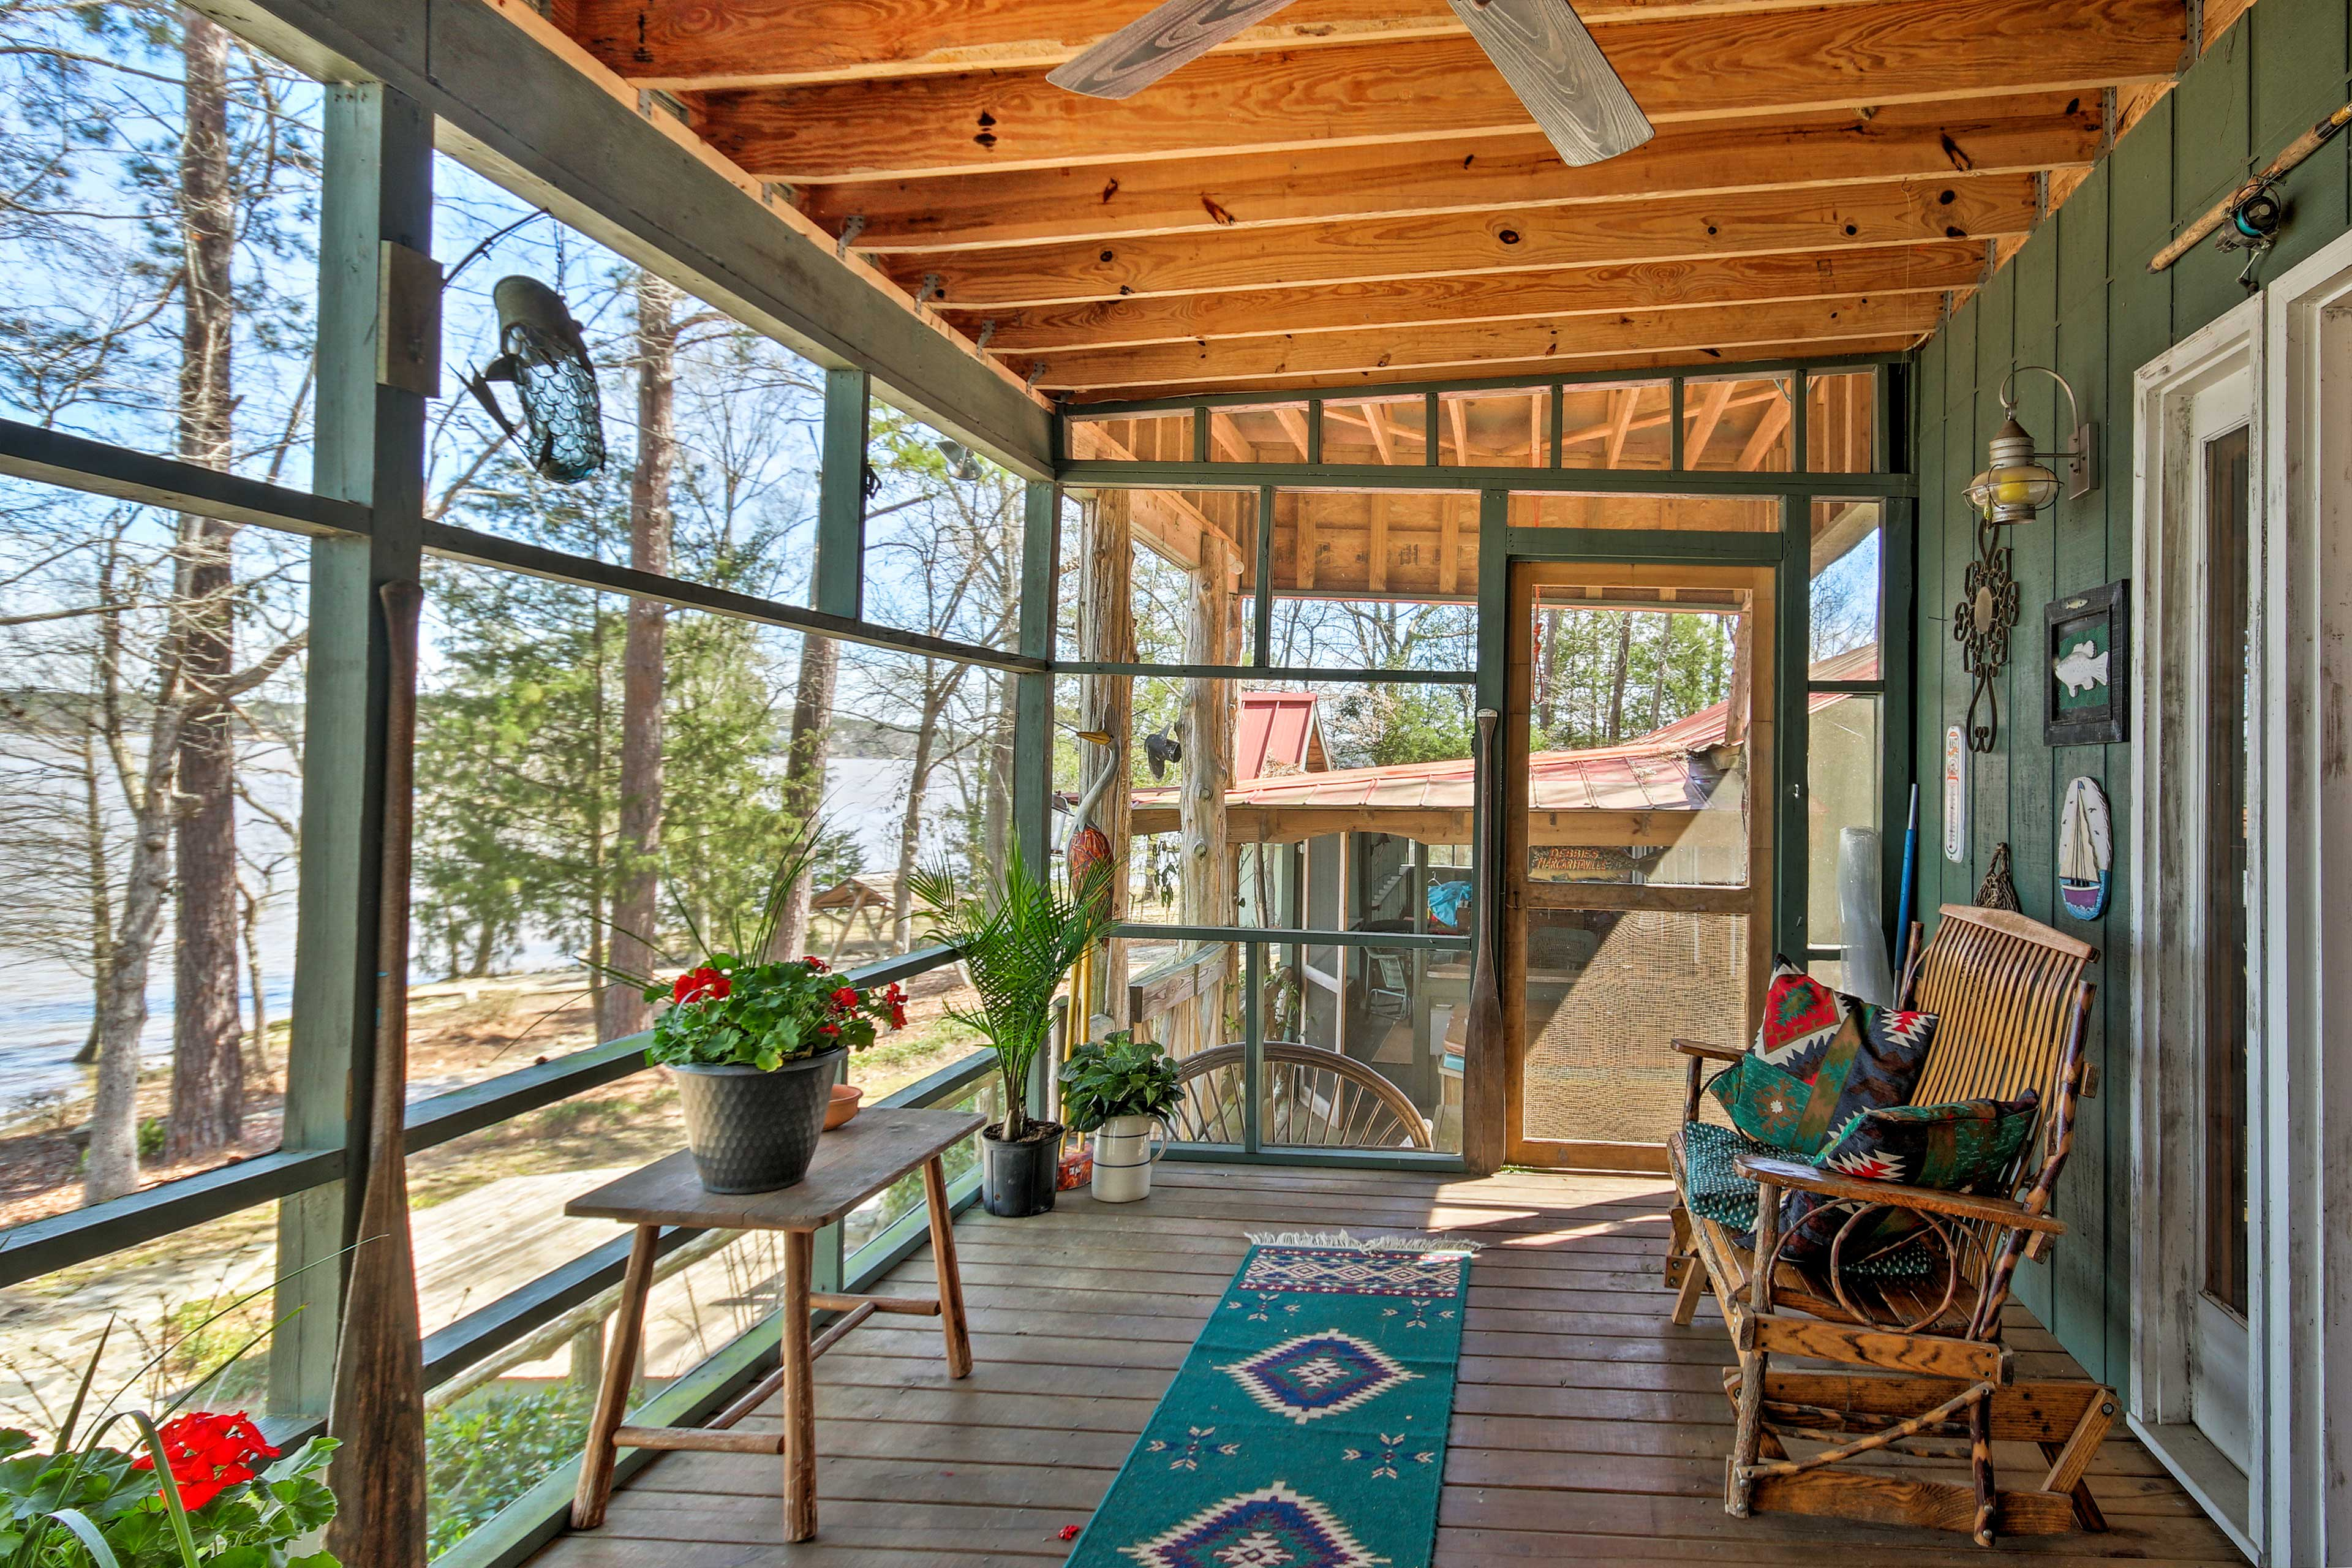 The covered porch has a lake views.